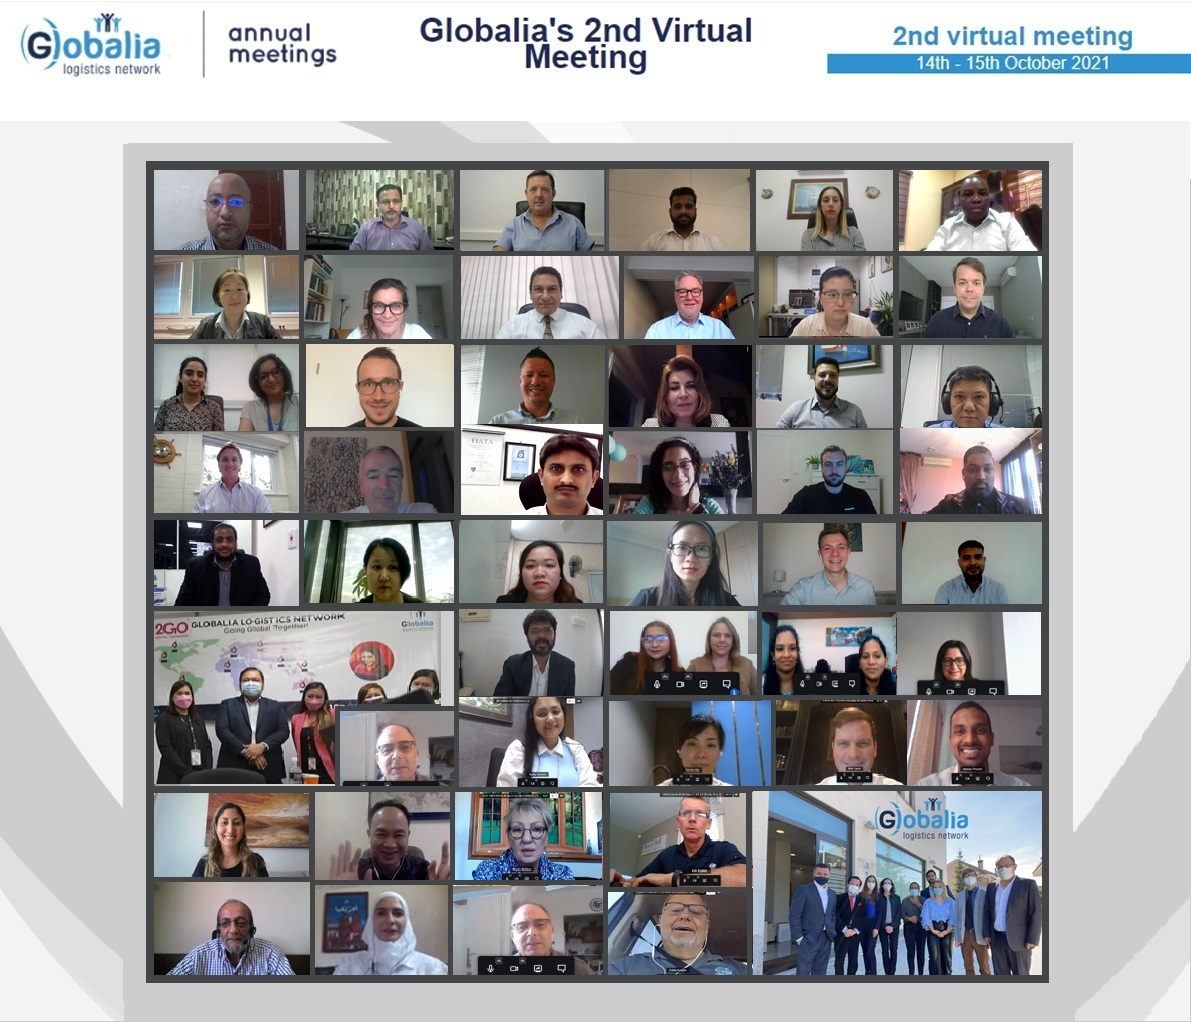 Globalia's 2nd virtual meeting of independent freight forwarders